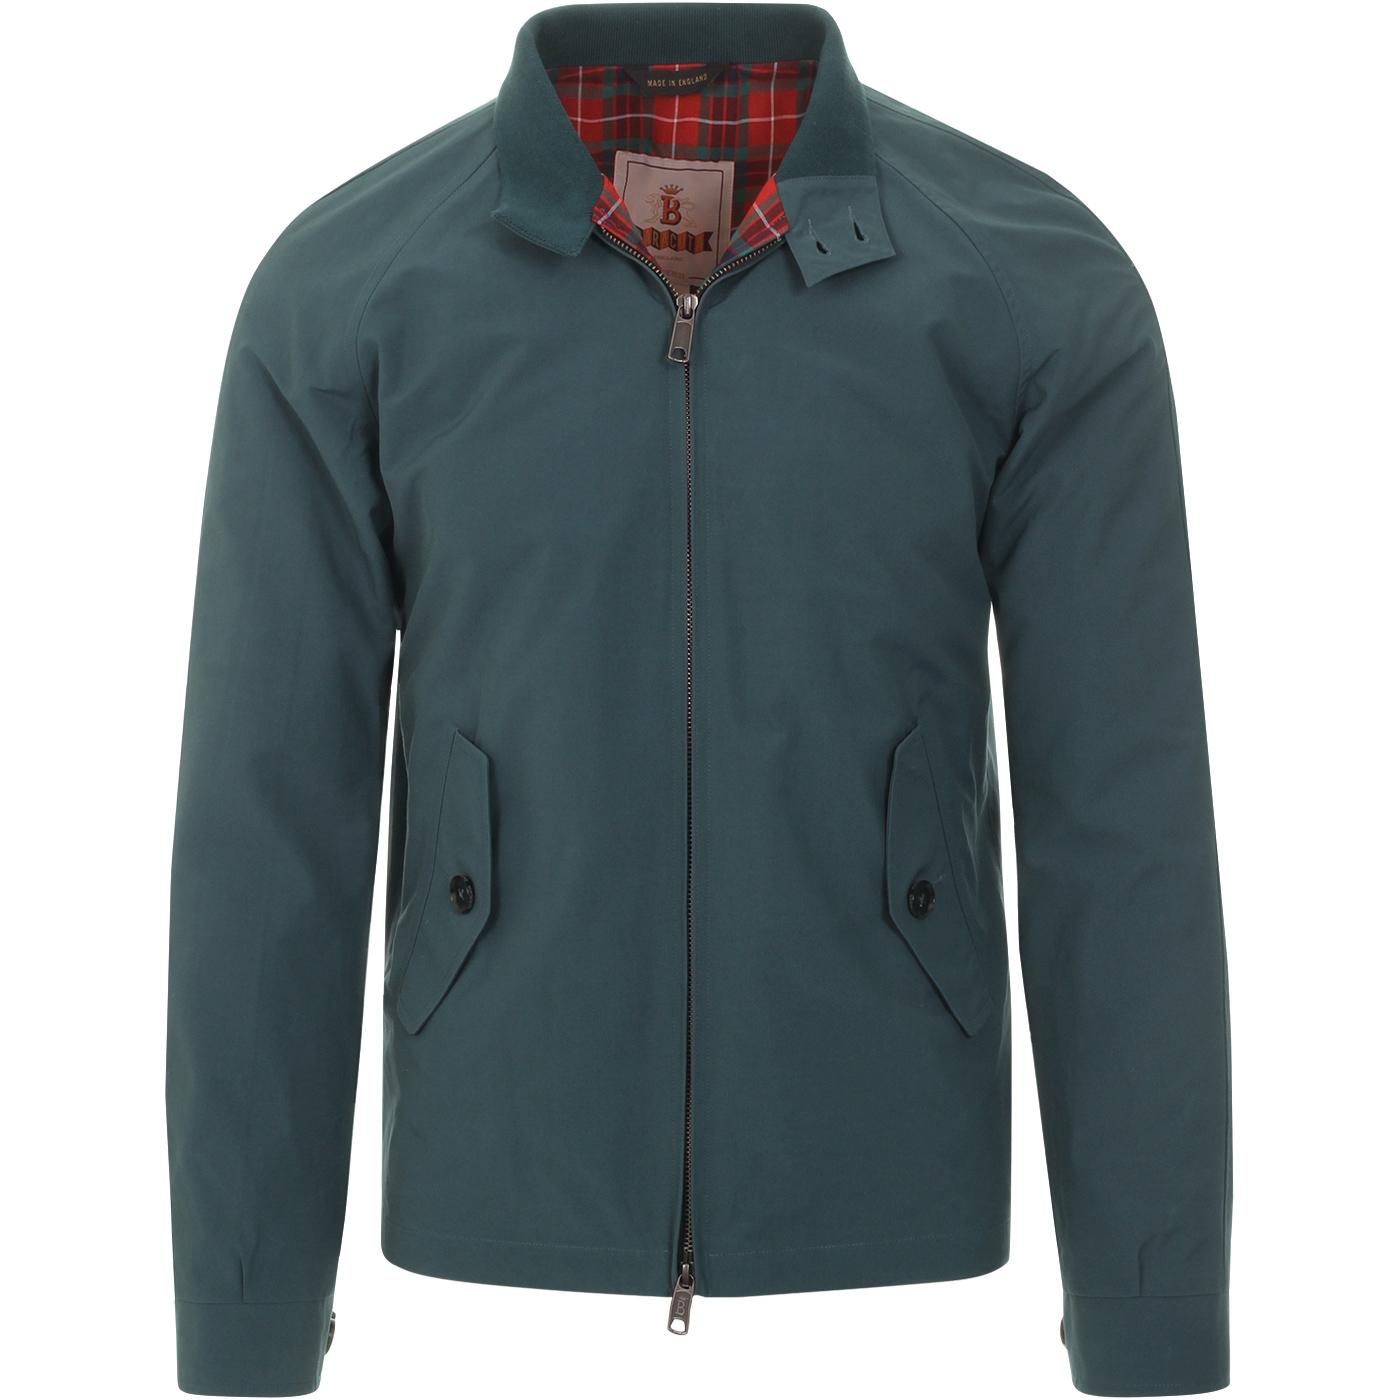 BARACUTA G4 Men's Made In England Harrington BL